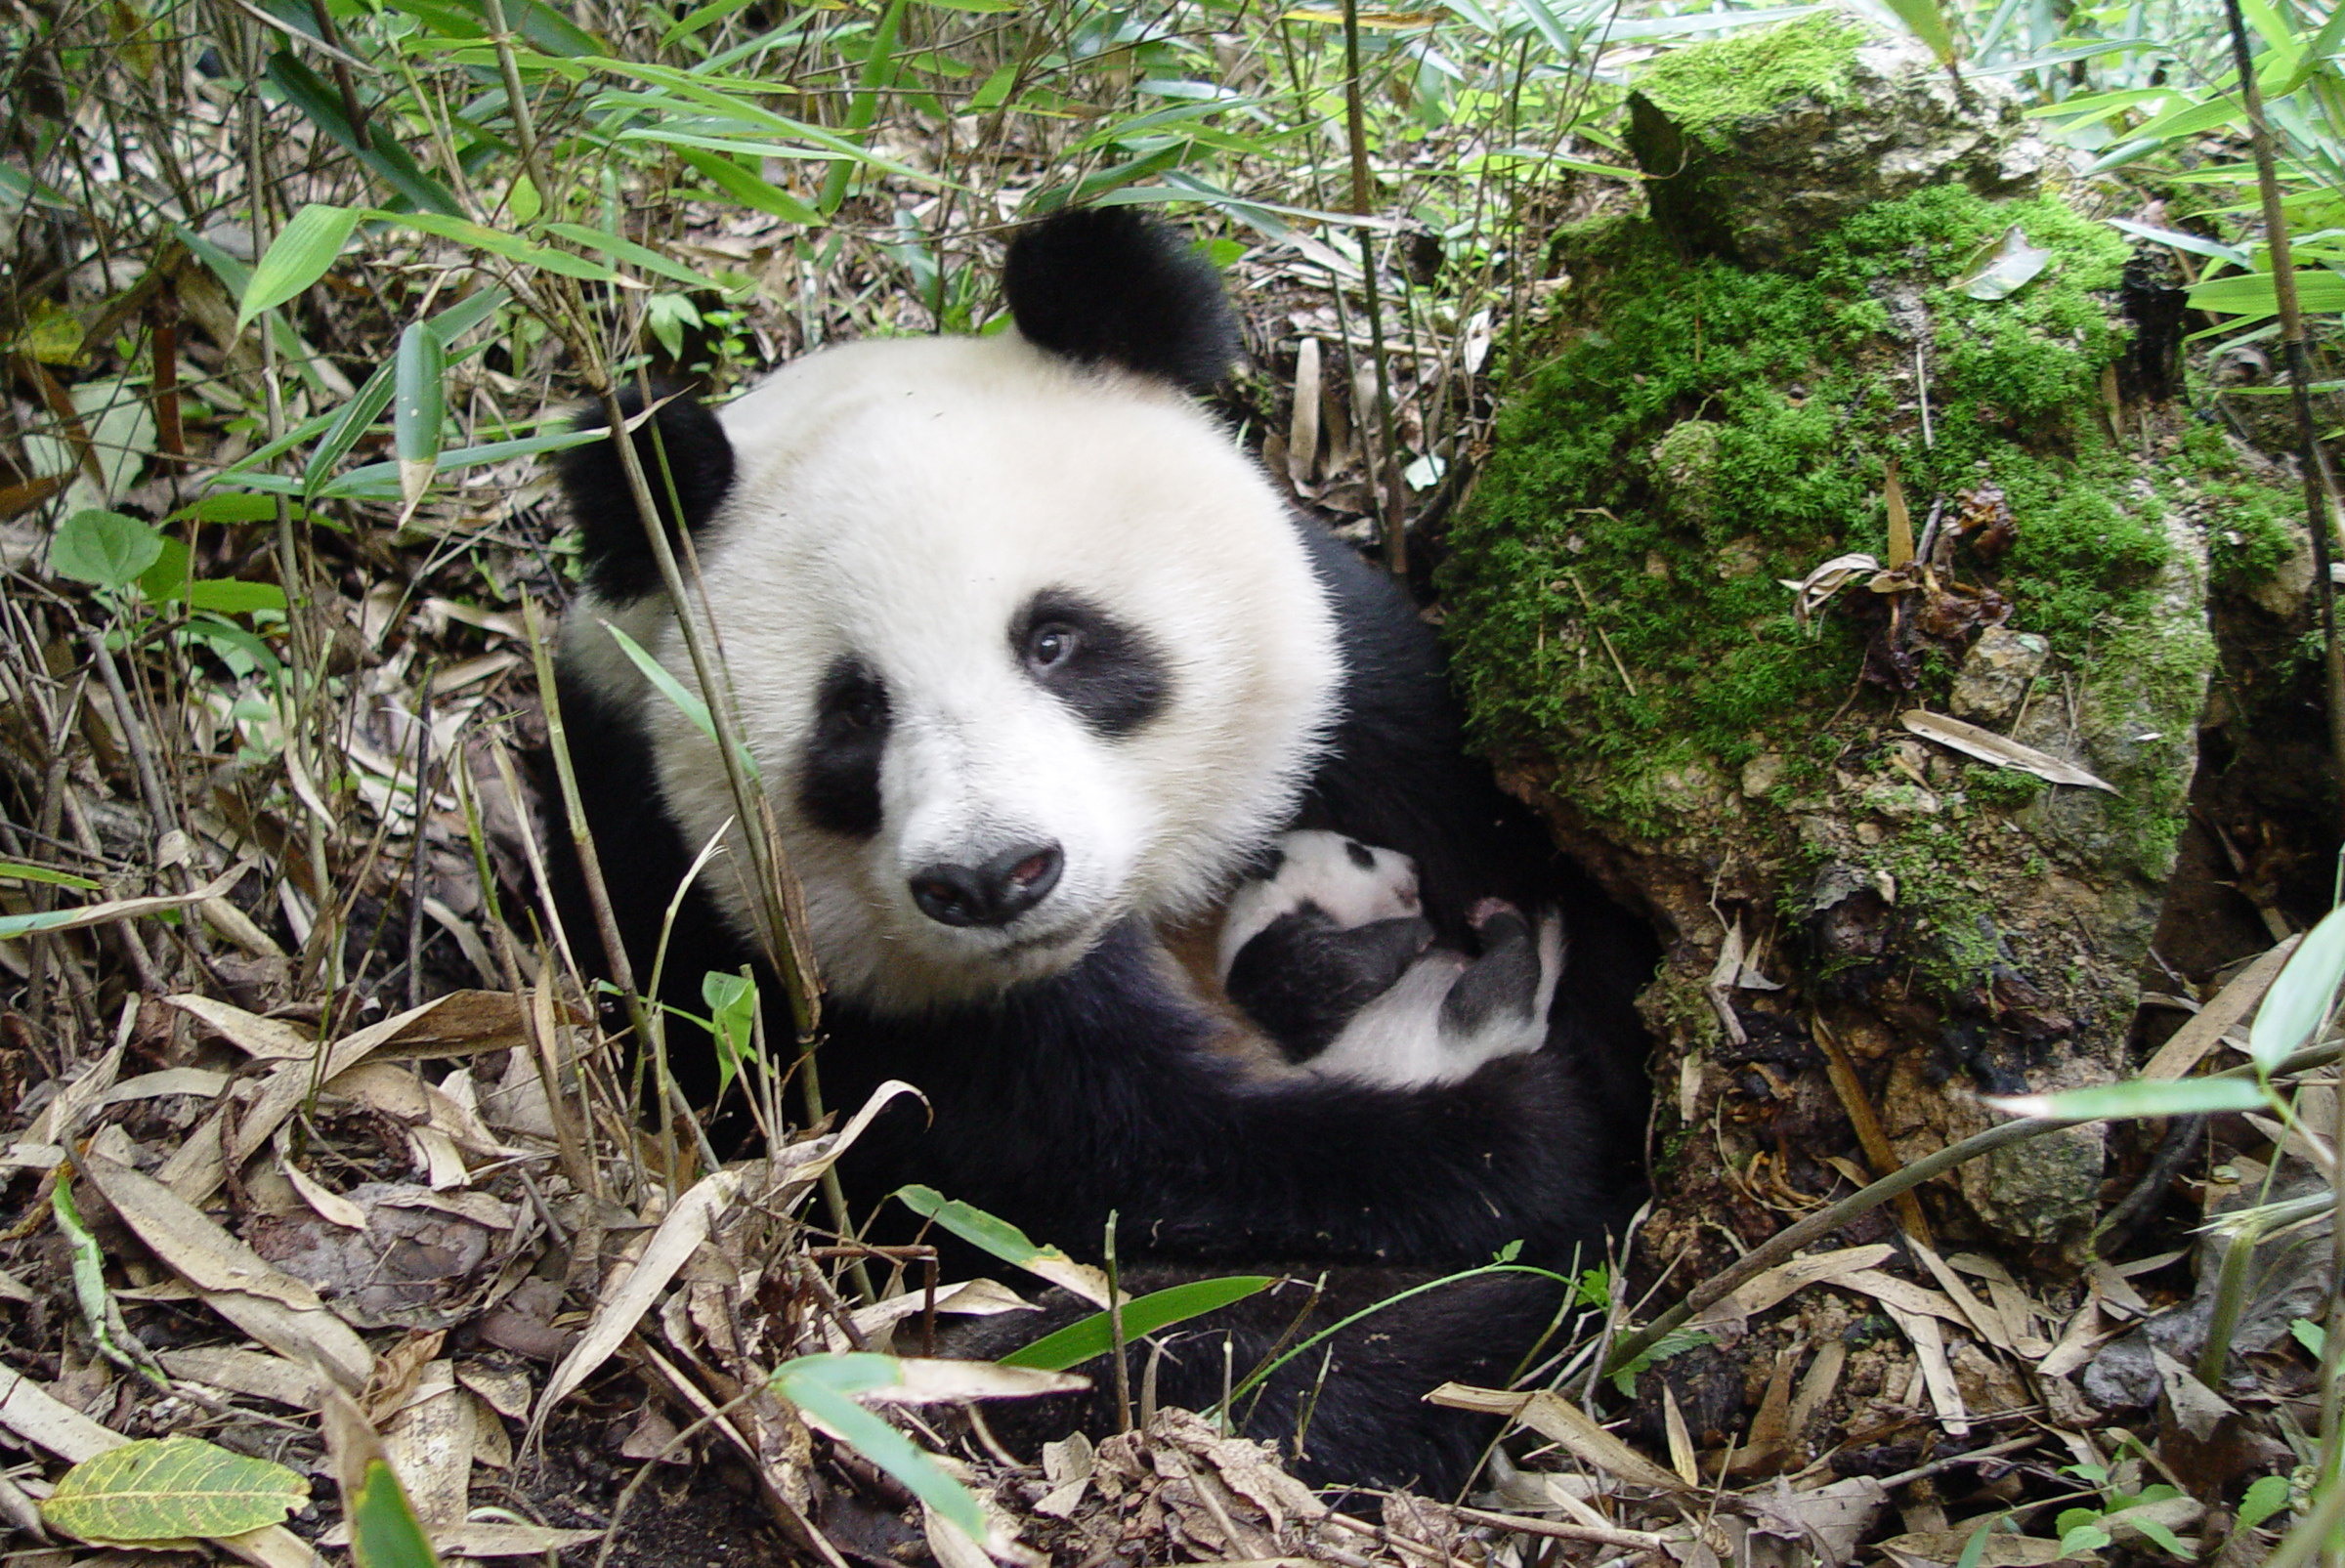 Giant Panda with a young cub in Shaanxi province, China.